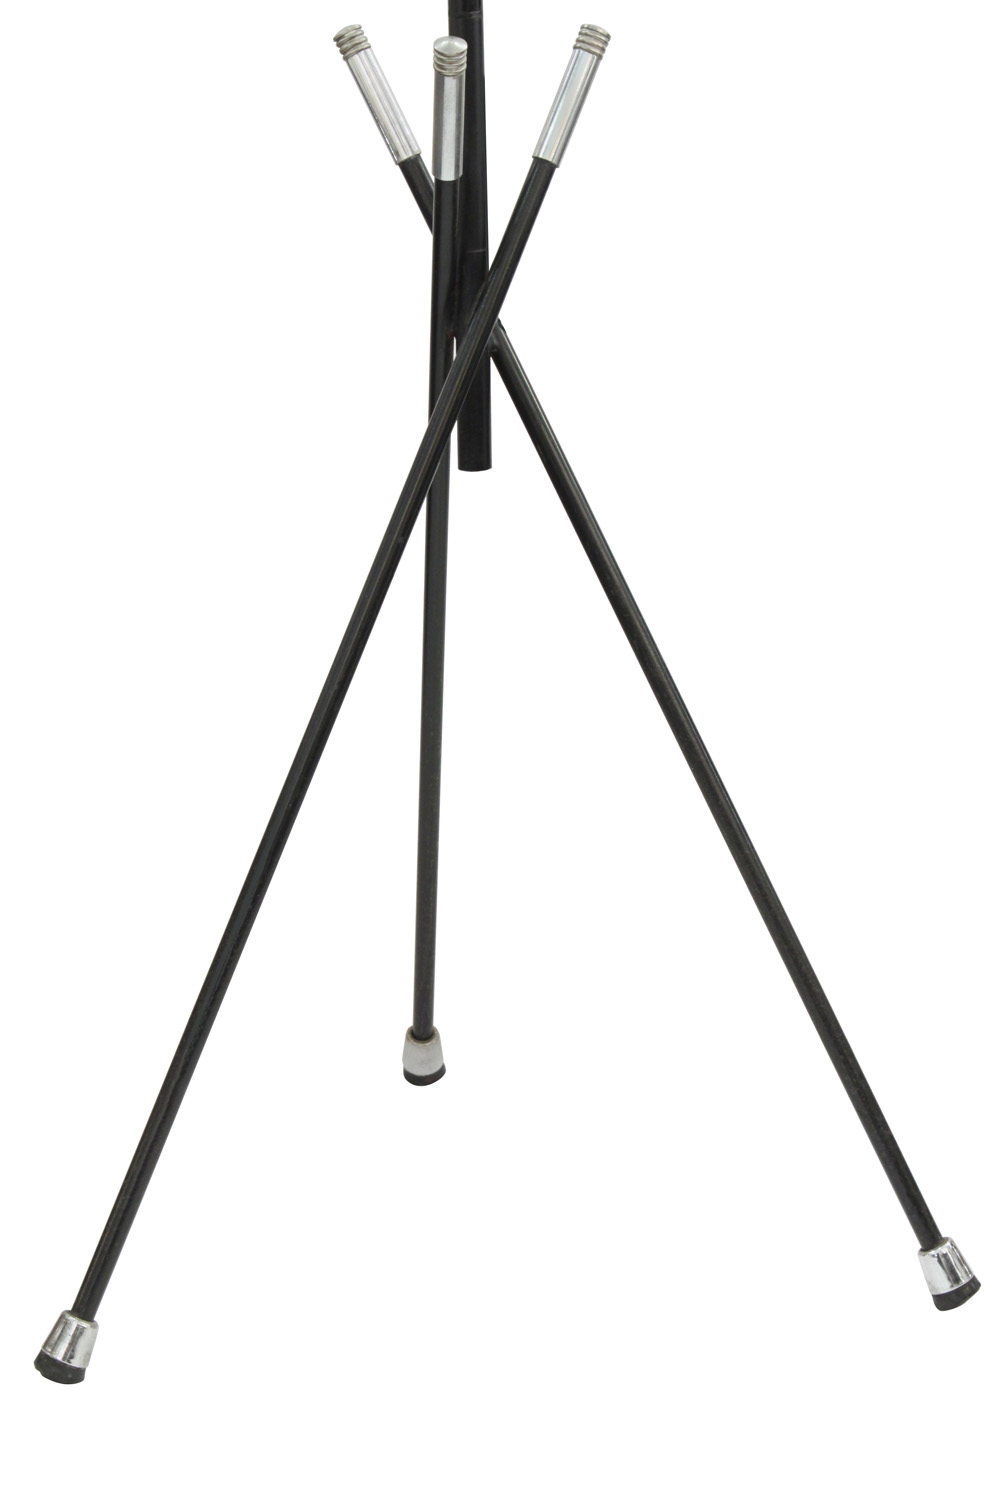 French 55 3 leg blk nickel accnts floorlamp160 detail4 hires.jpg